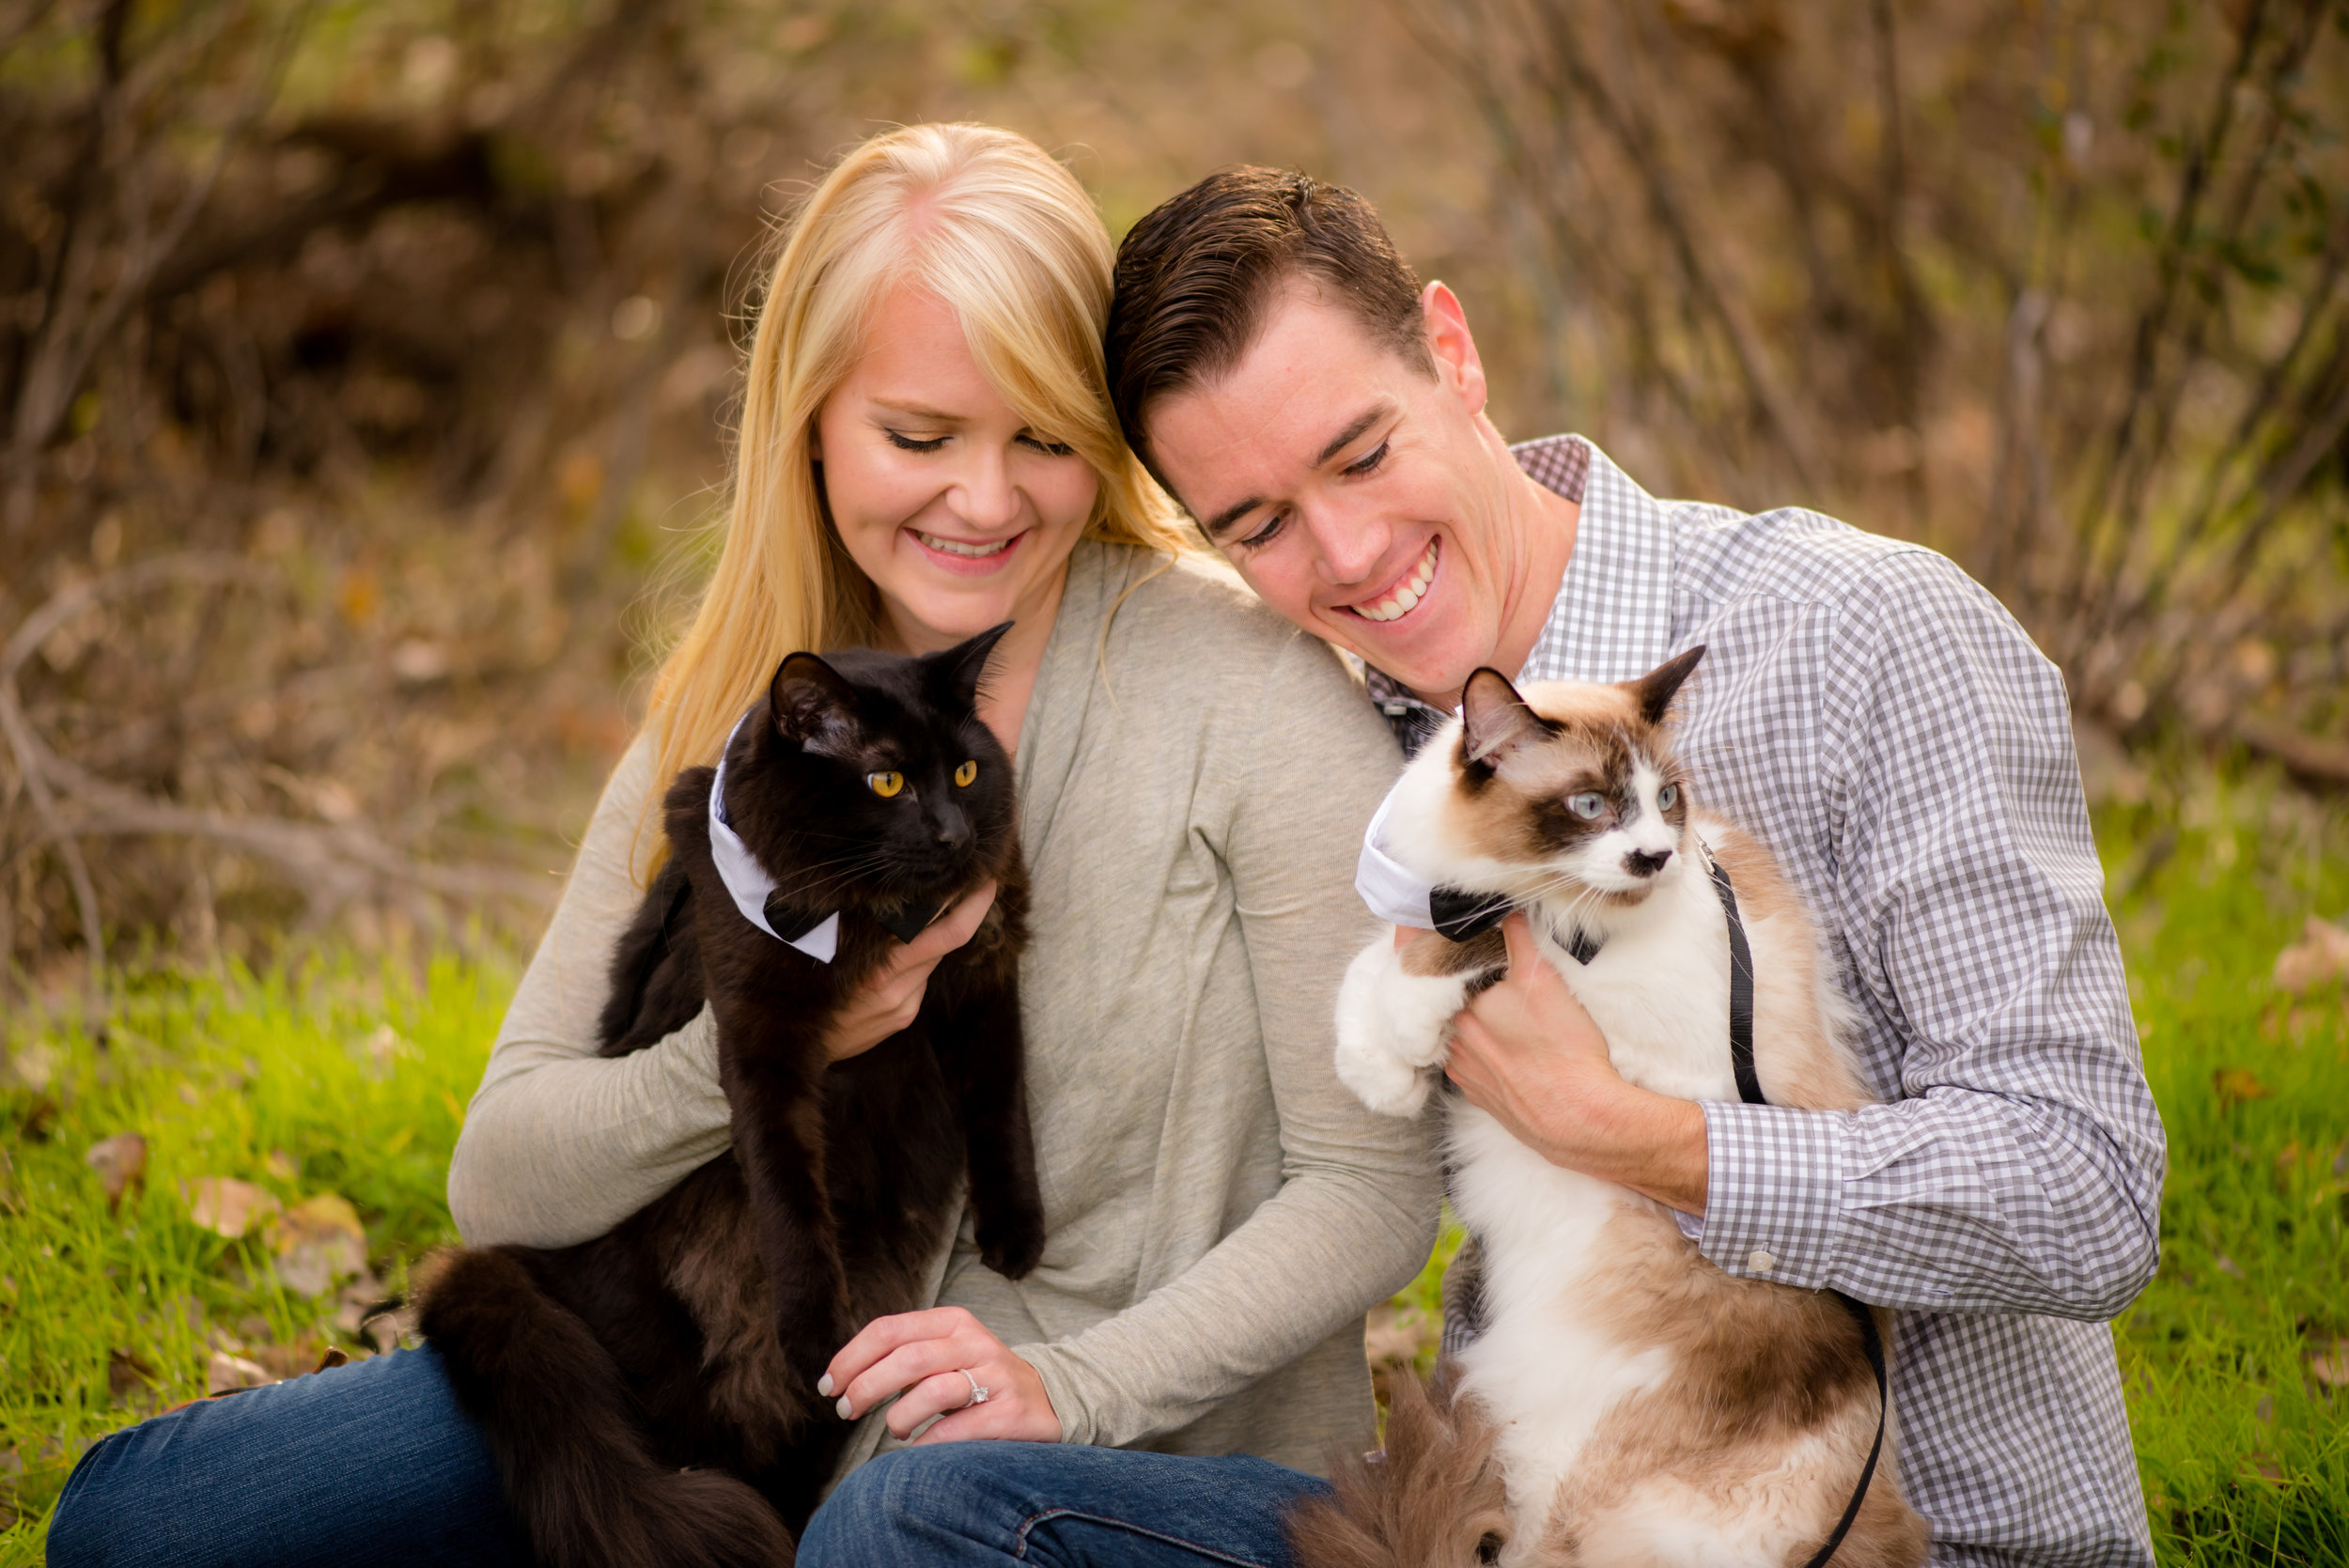 rachel-tanner-003-folsom-engagement-photos-wedding-photographer-katherine-nicole-photography.JPG